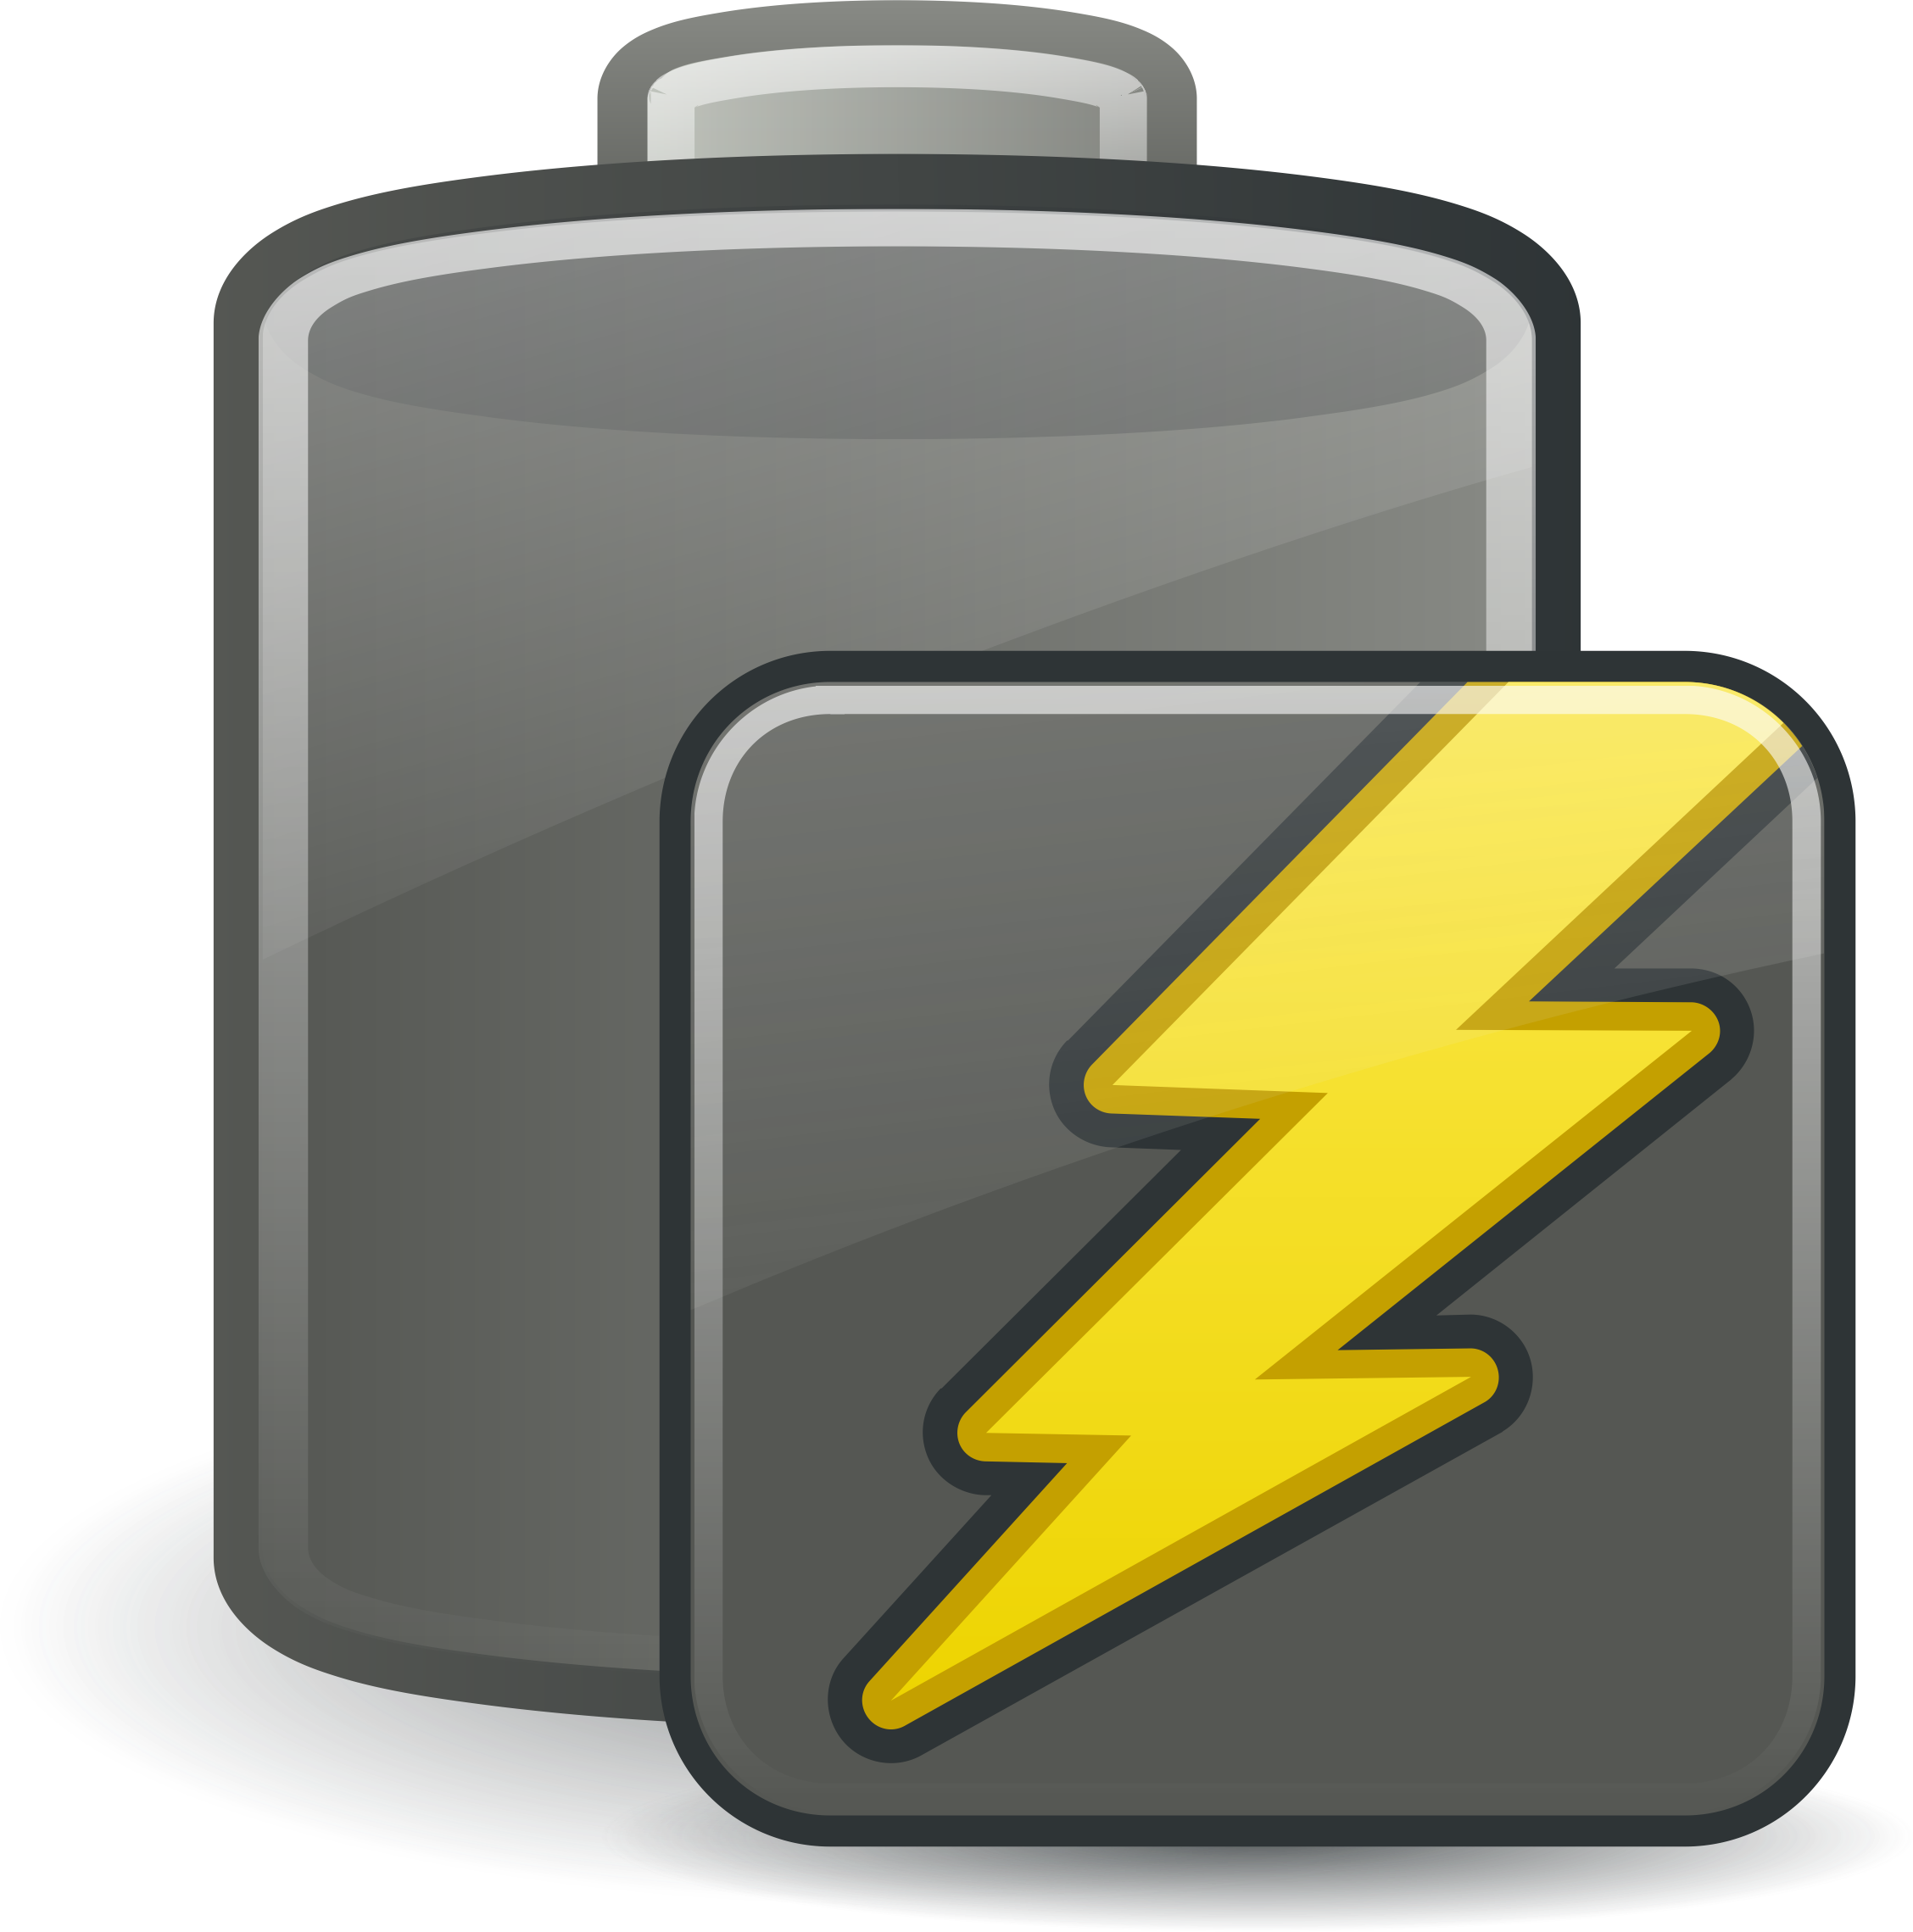 Battery Empty Image Icon image #31203